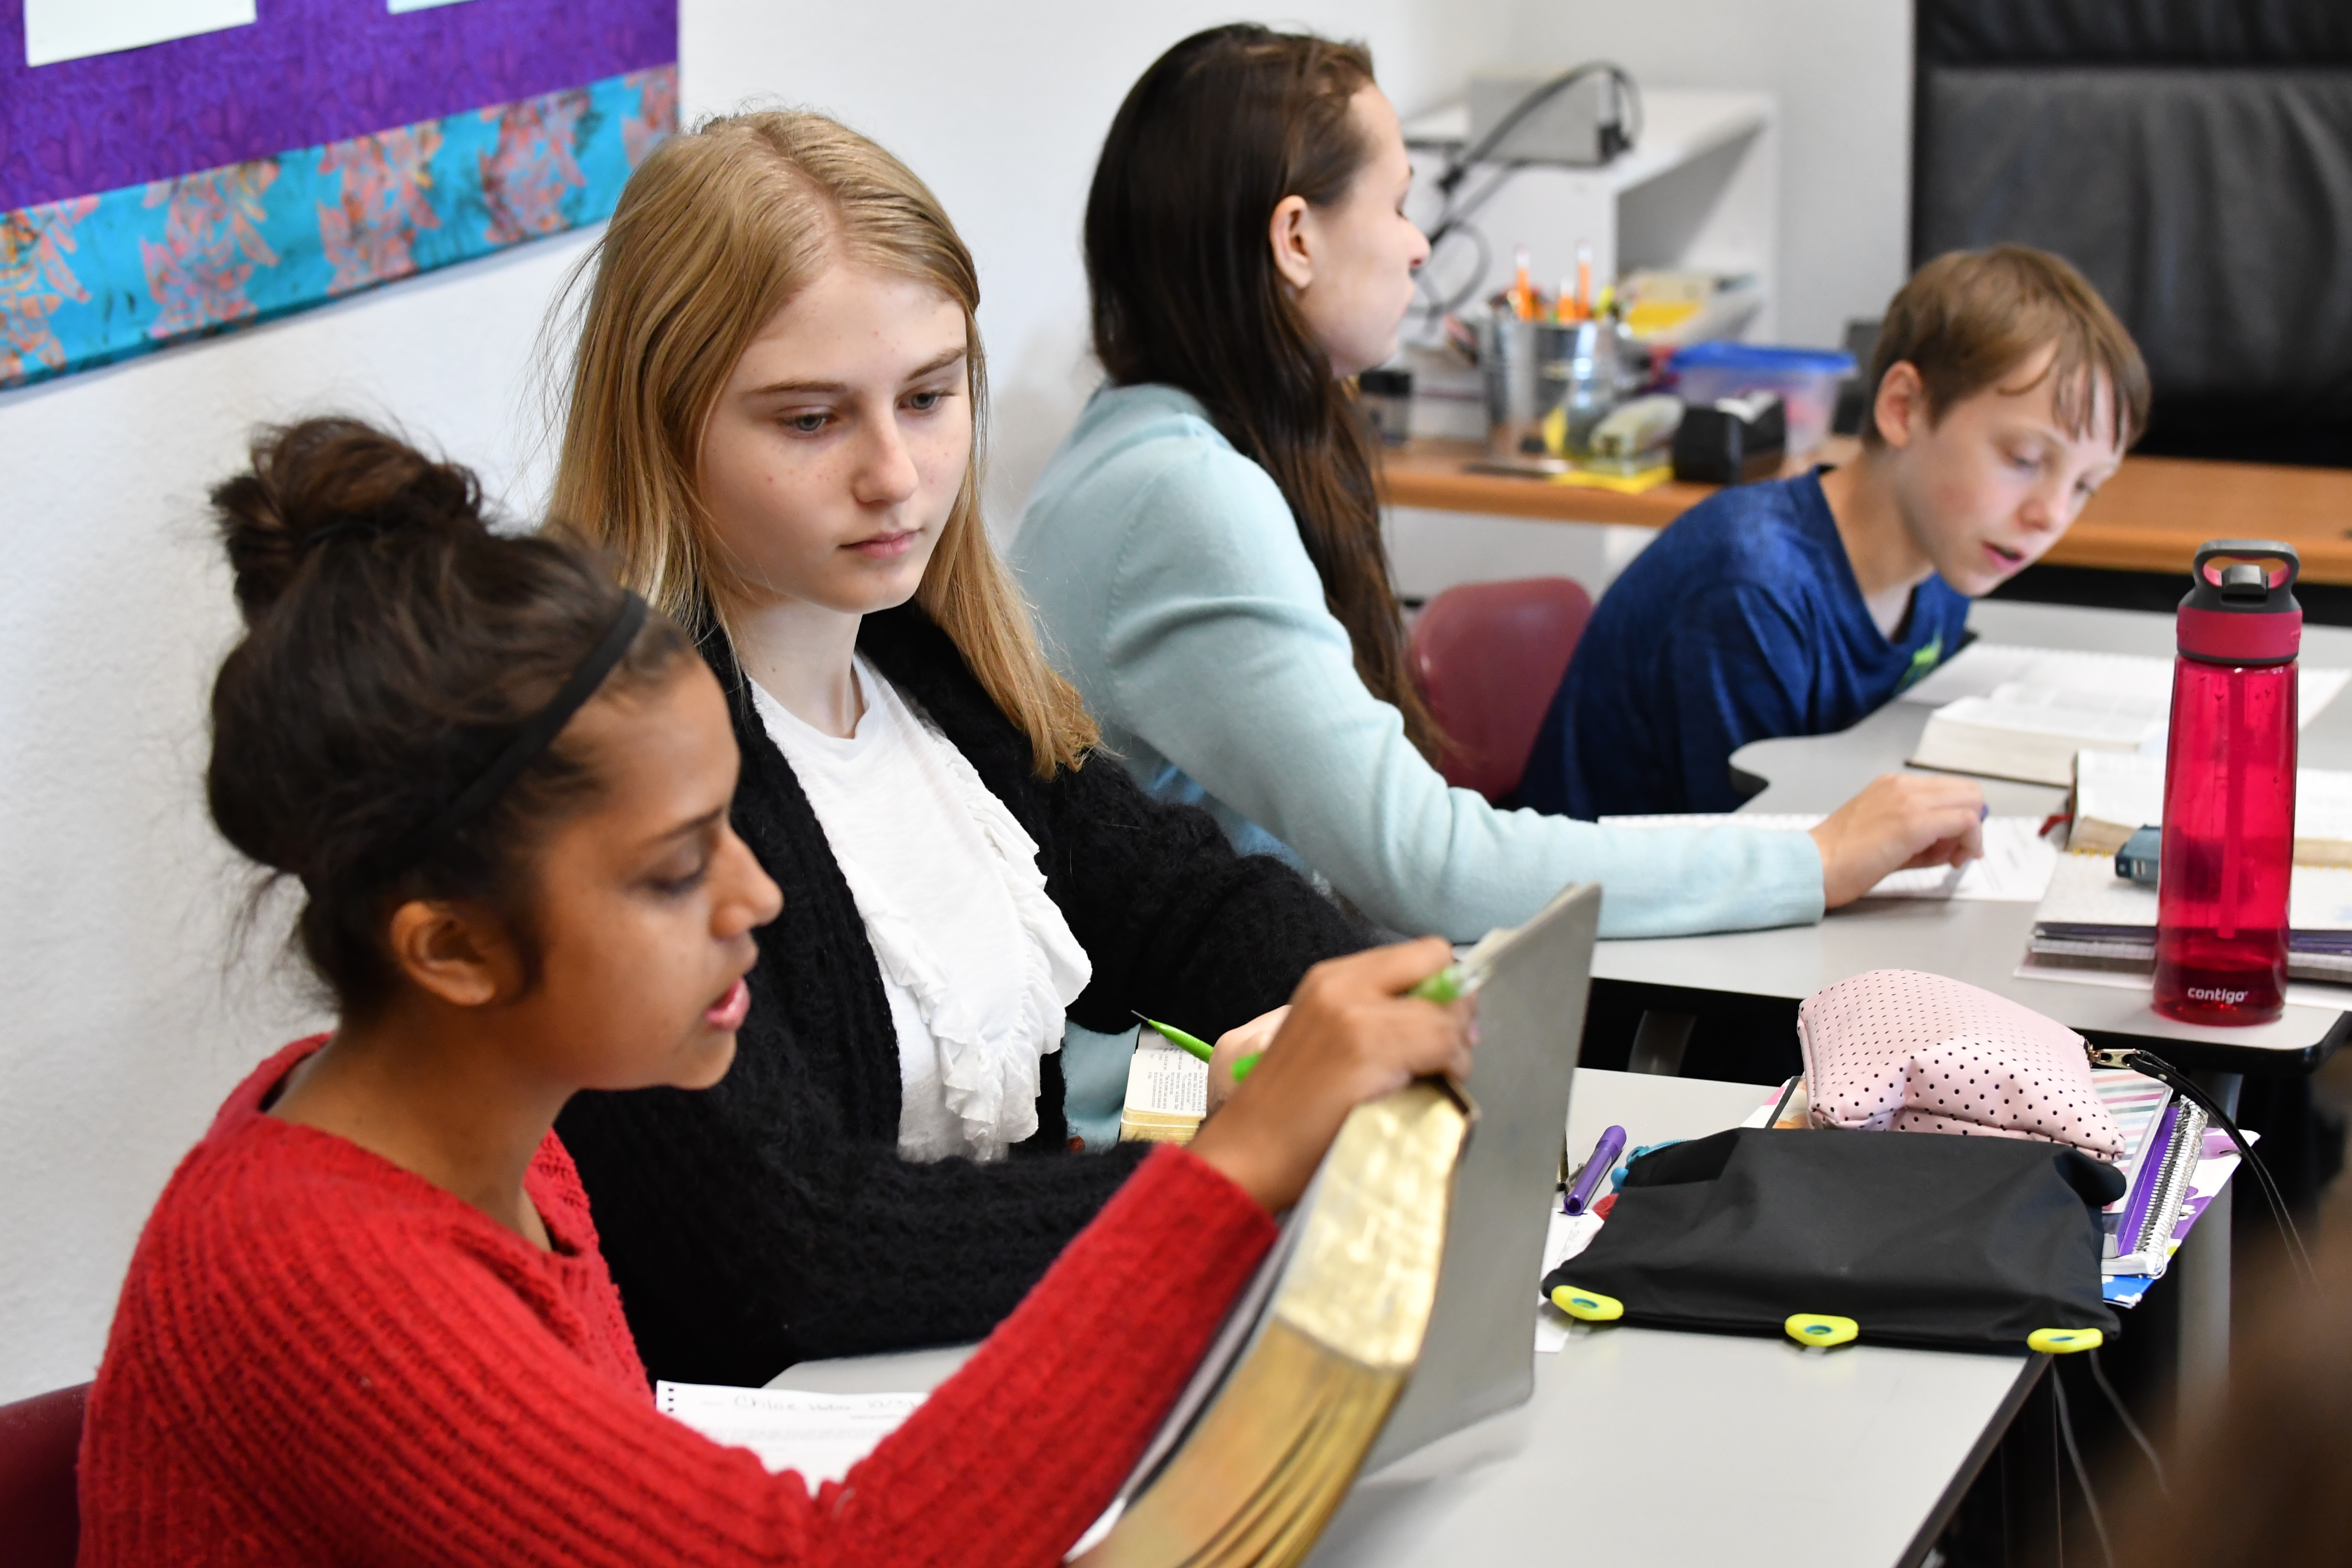 Responsible students collaborating, working together